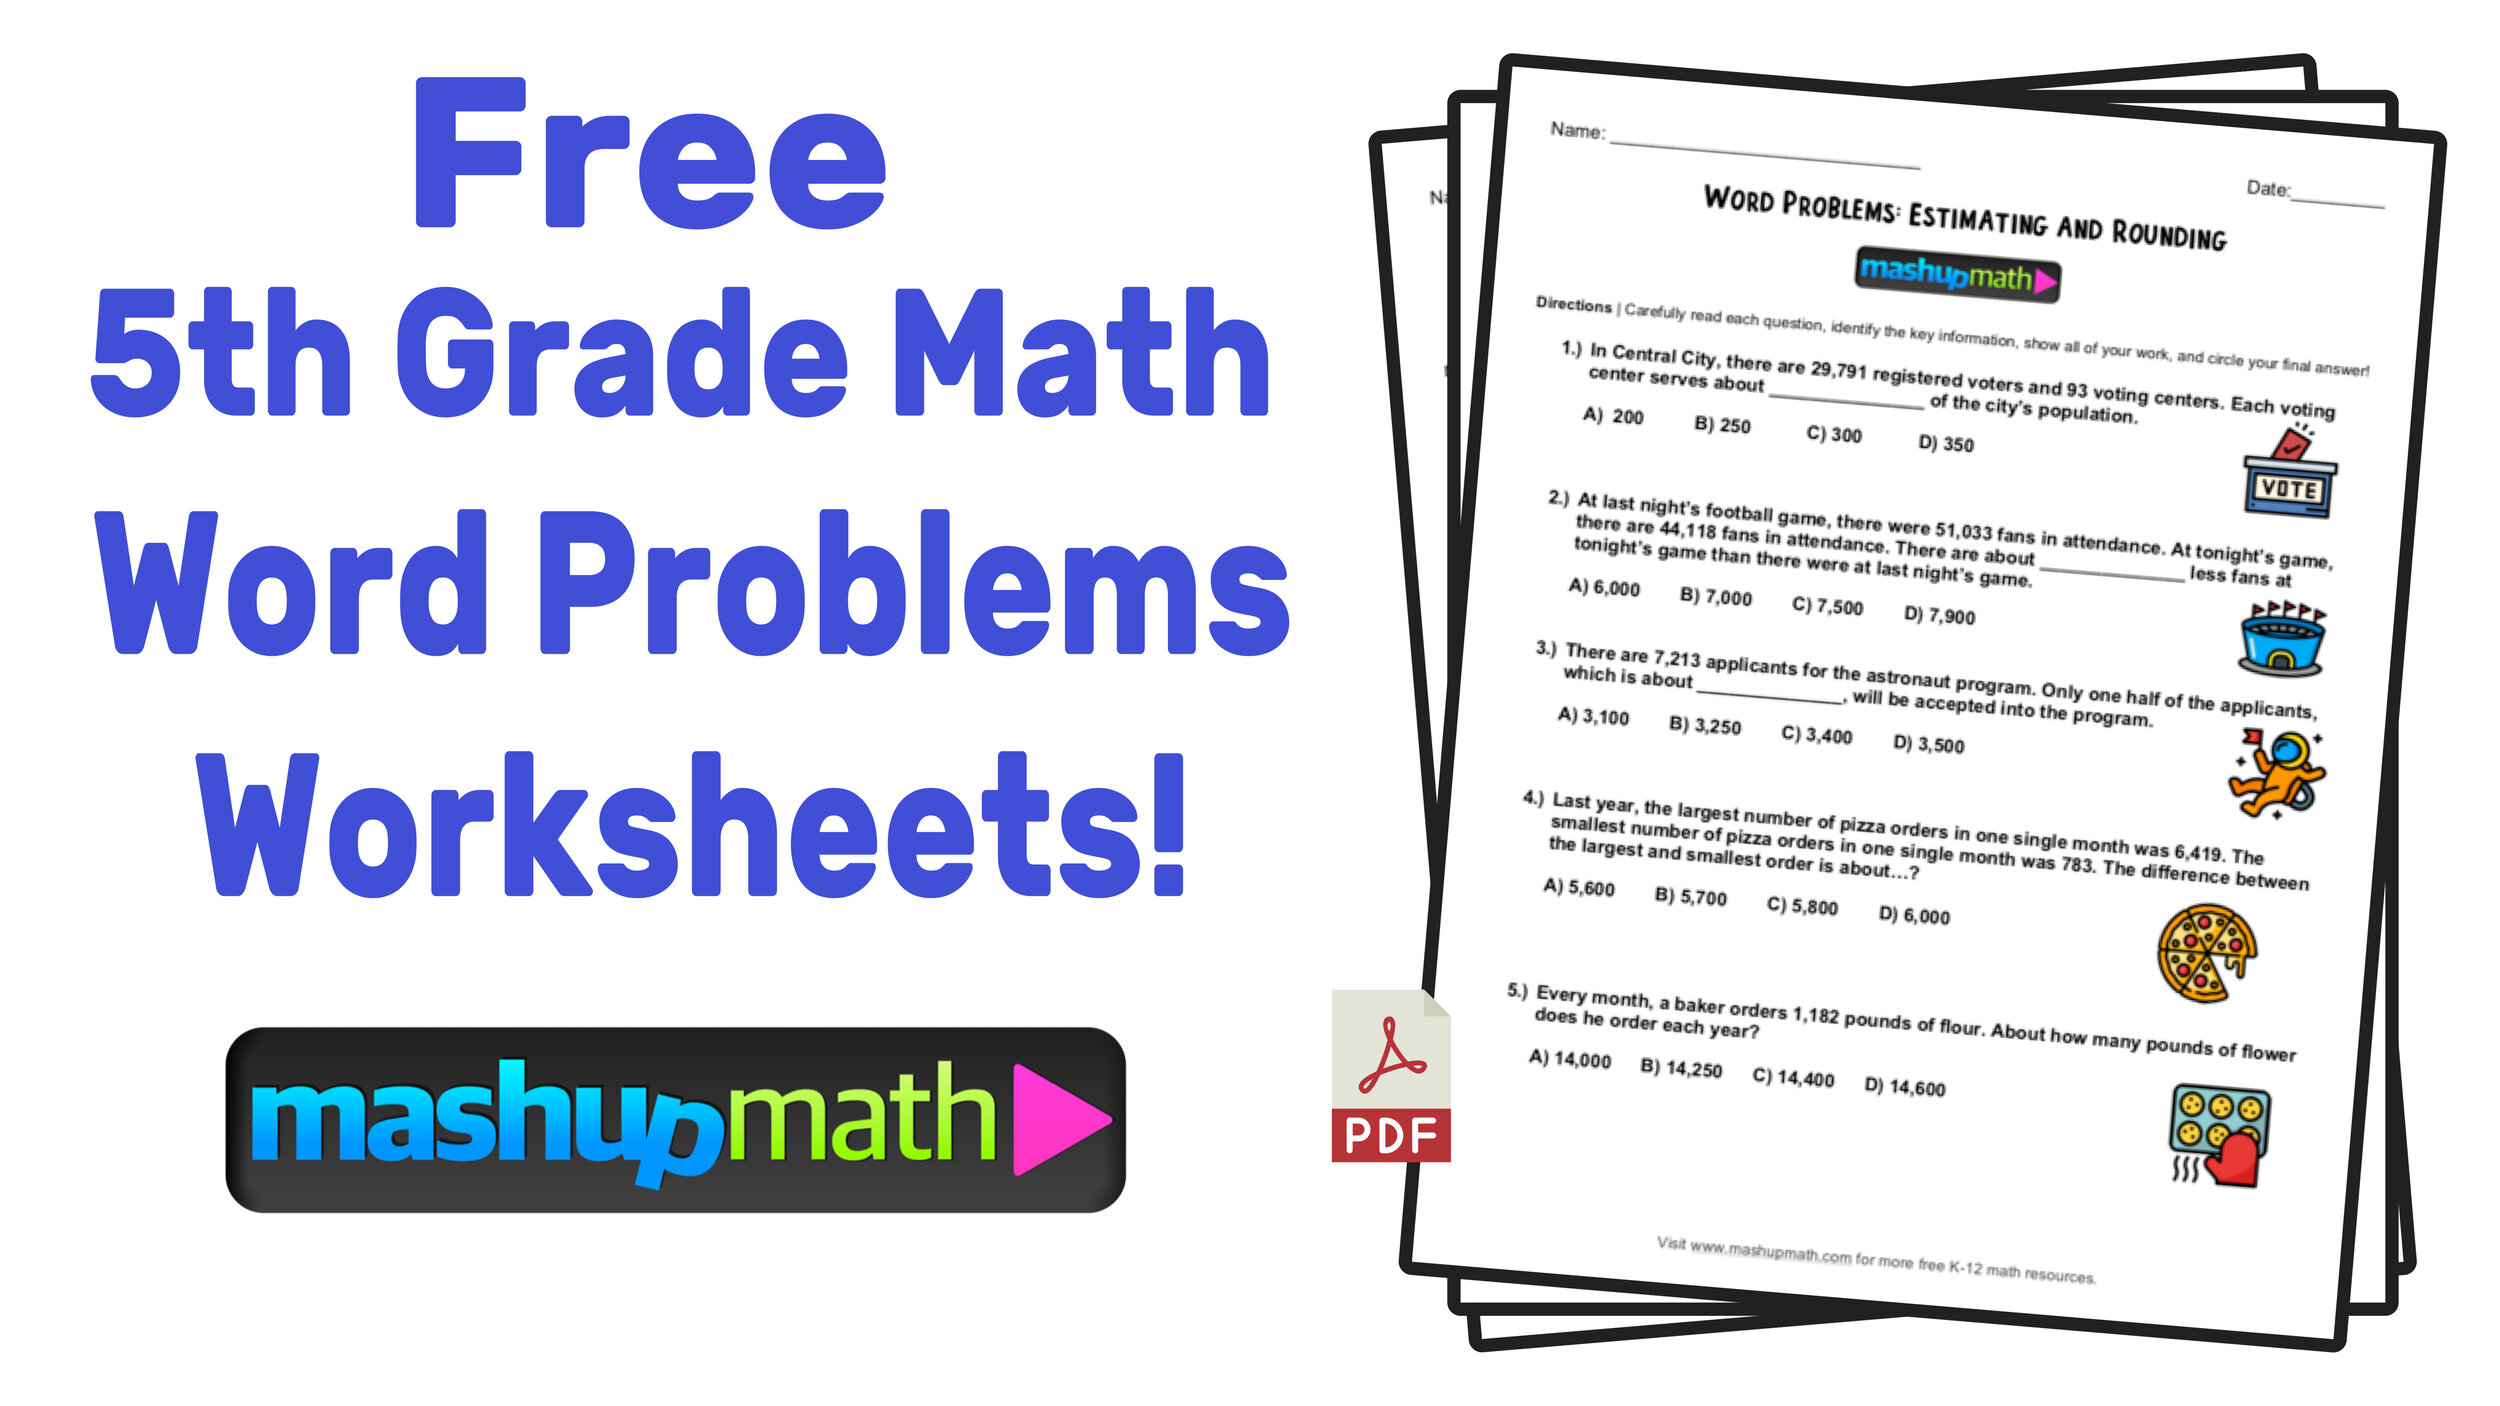 5th Grade Math Word Problems: Free Worksheets with Answers ...